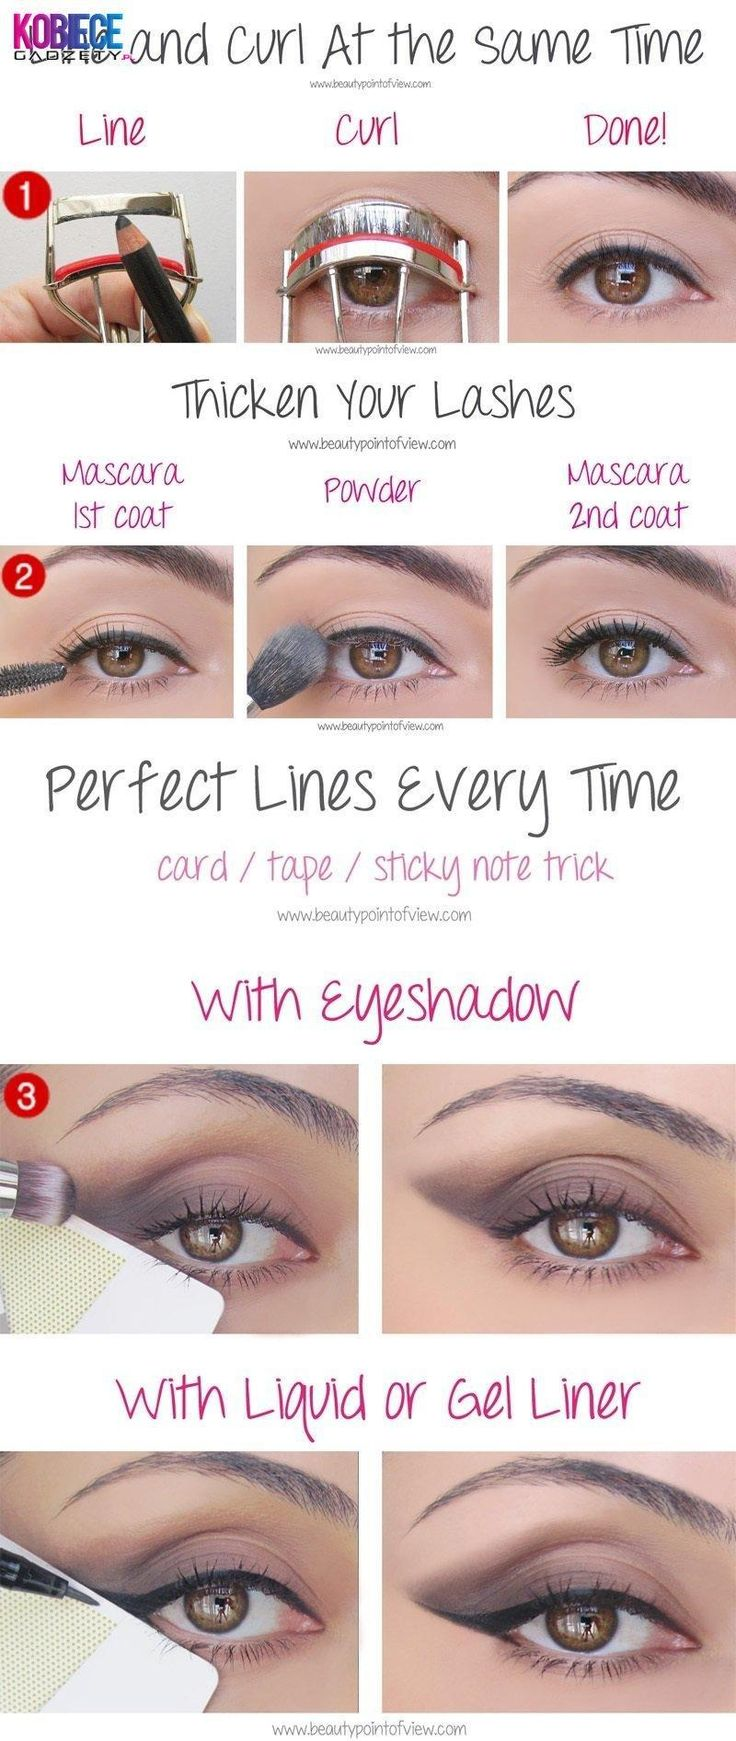 25 unique make up hacks ideas on pinterest how to apply makeup 45 genius beauty hacks to try if you want to look fab eye makeup tipsmakeup ccuart Gallery